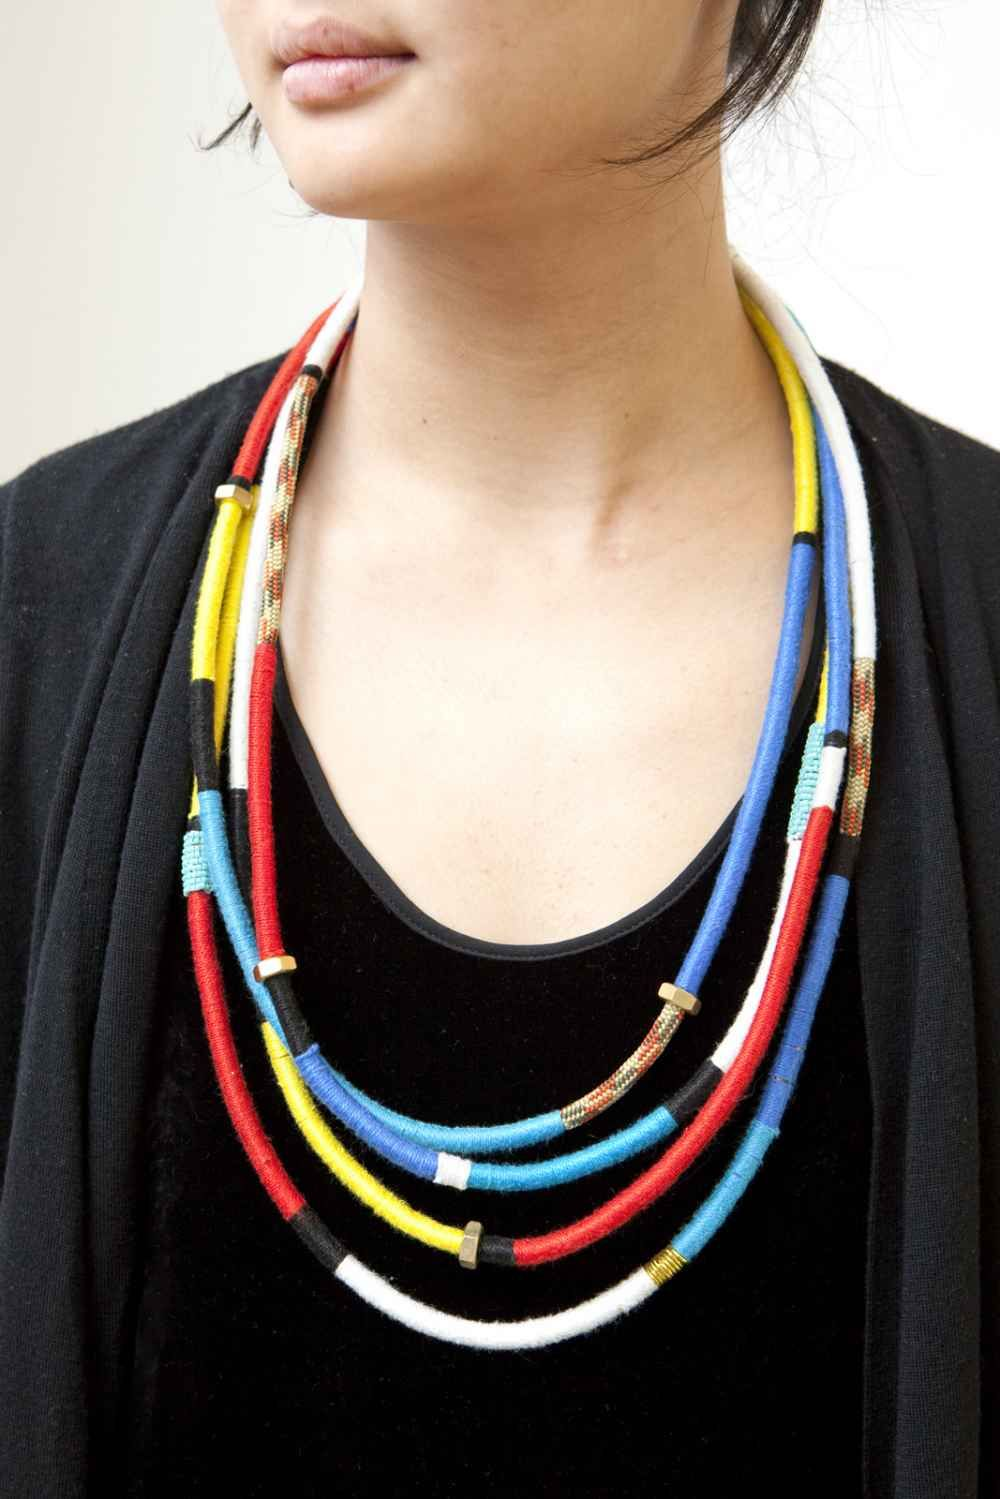 Diy accessories fun accessory projects you can do yourself craft diy accessories fun accessory projects you can do yourself solutioingenieria Images